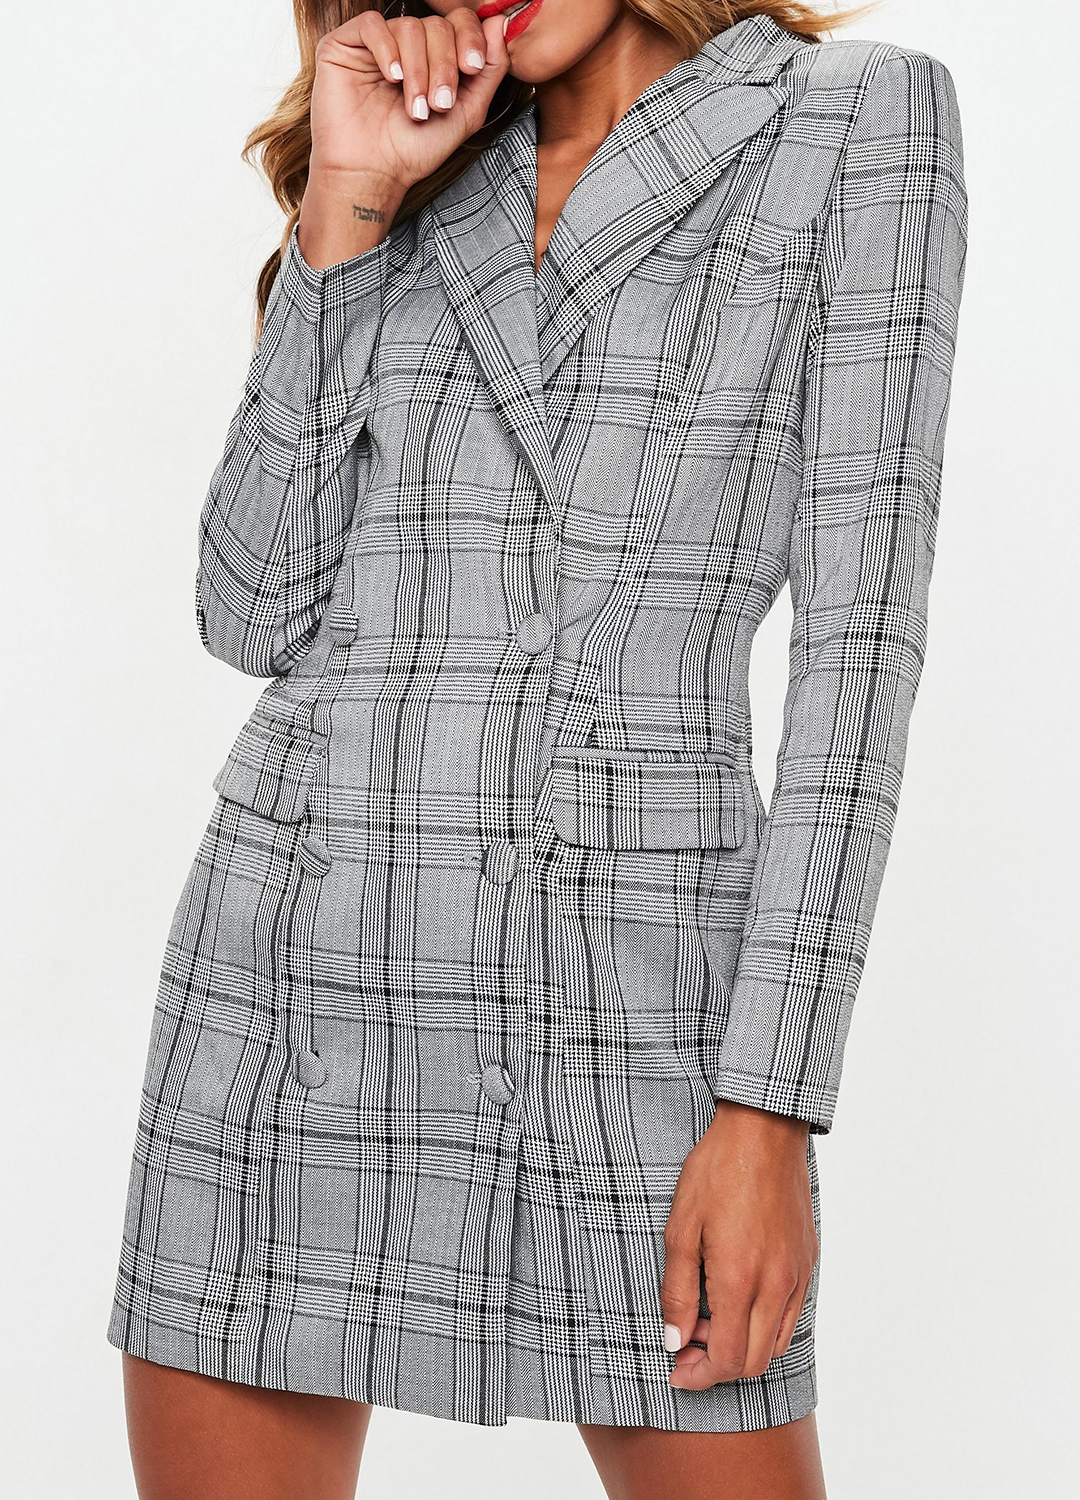 MISSGUIDED-GREY-PLAID-BLAZER-DRESS.png